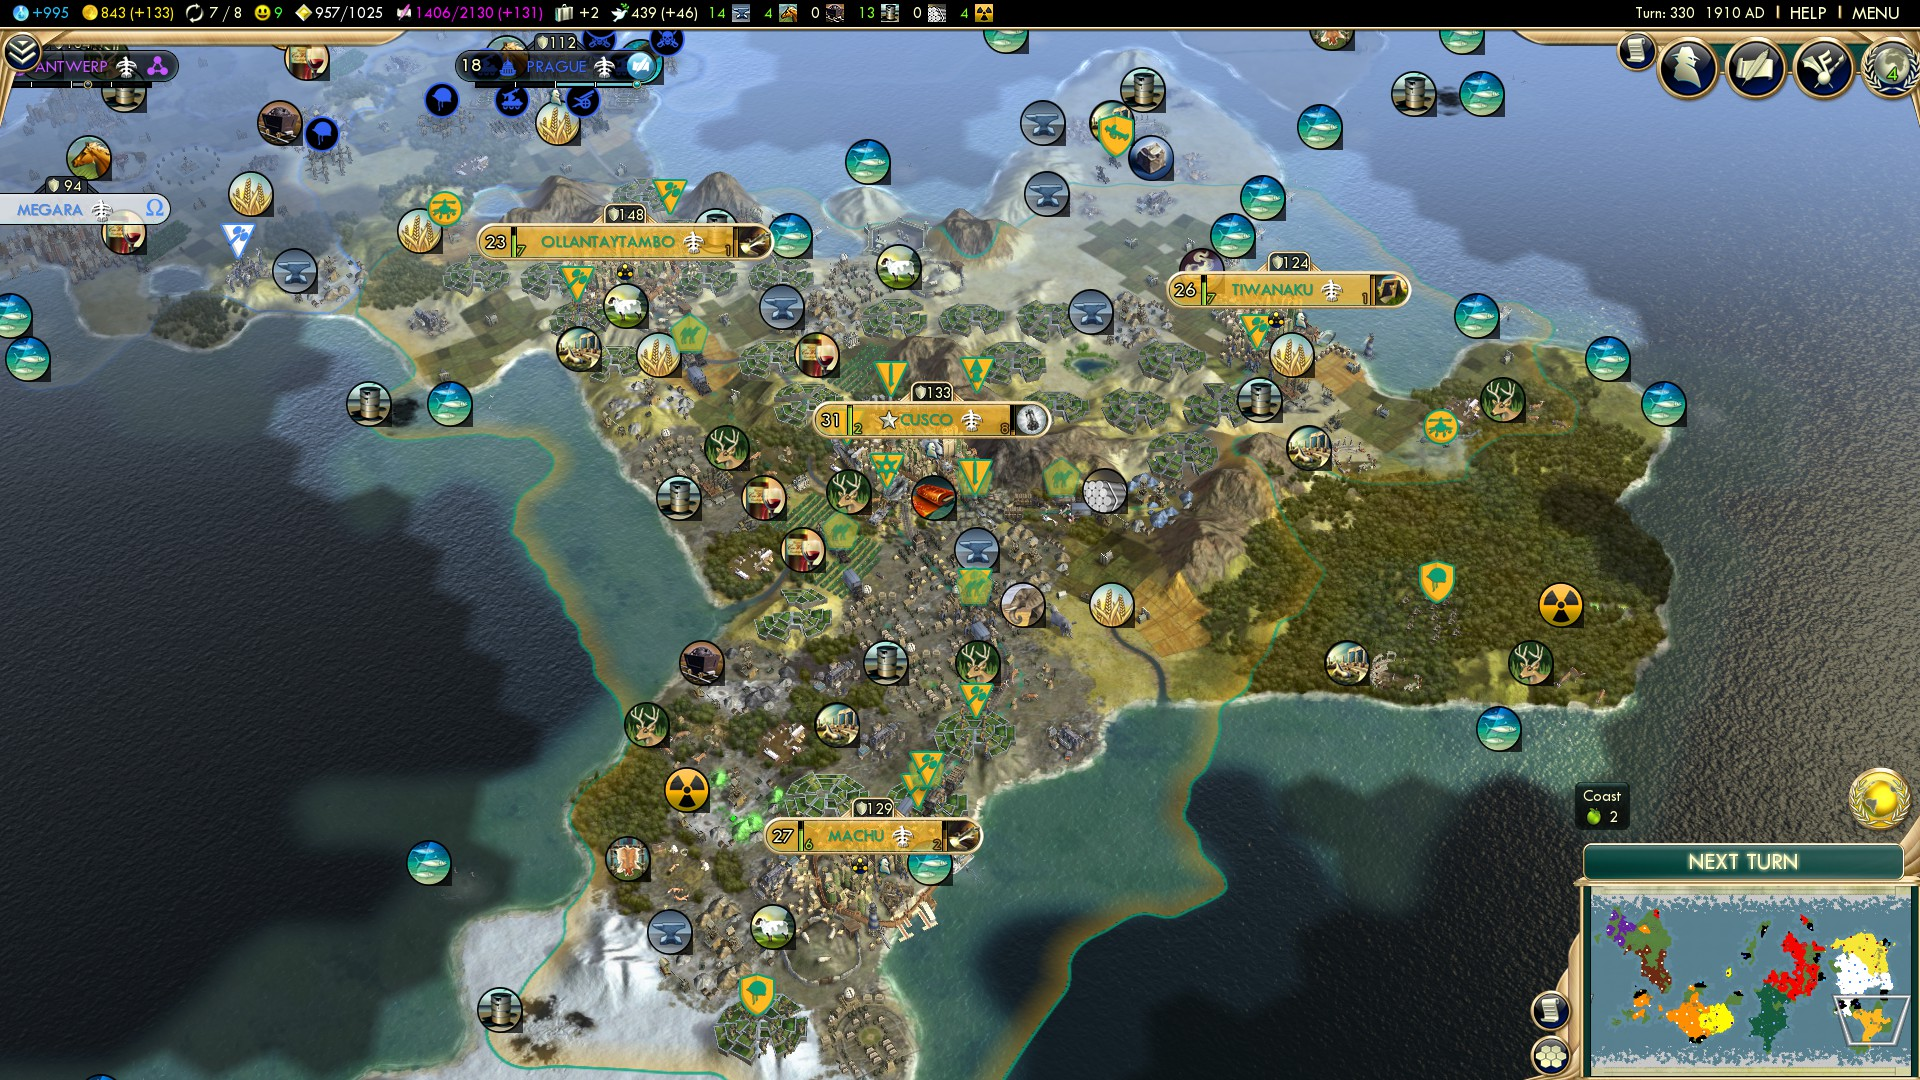 Steam Community :: Guide :: Building a Tall Empire